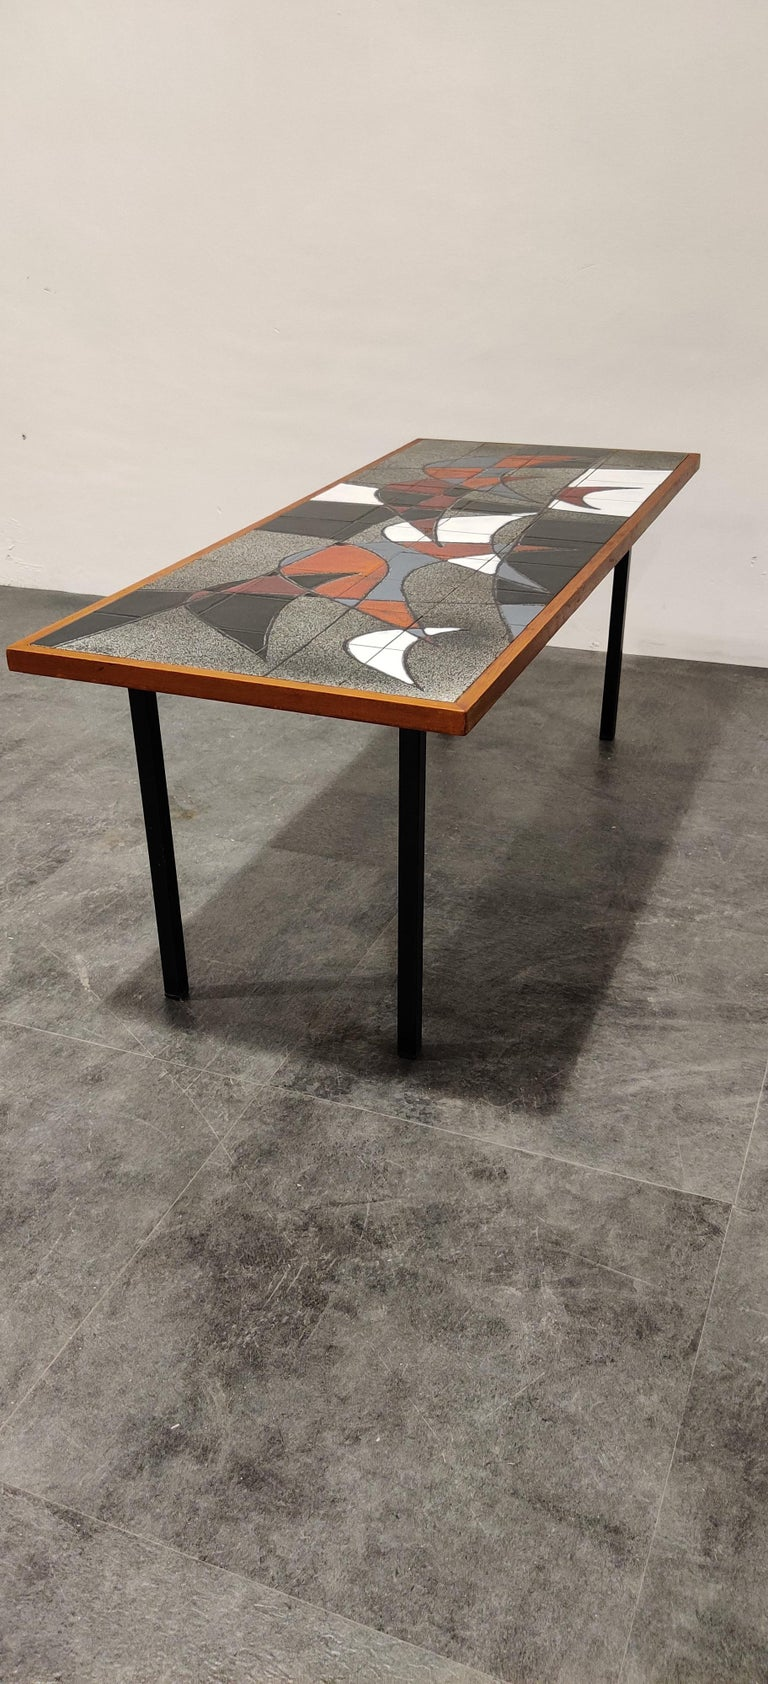 Stricking midcentury coffee table with a ceramic tiled top and a metal frame.  The table is signed by Vigneron.  Attractive colors and design.  Good condition.  1960s, Belgium  Good condition, minimal wear on the